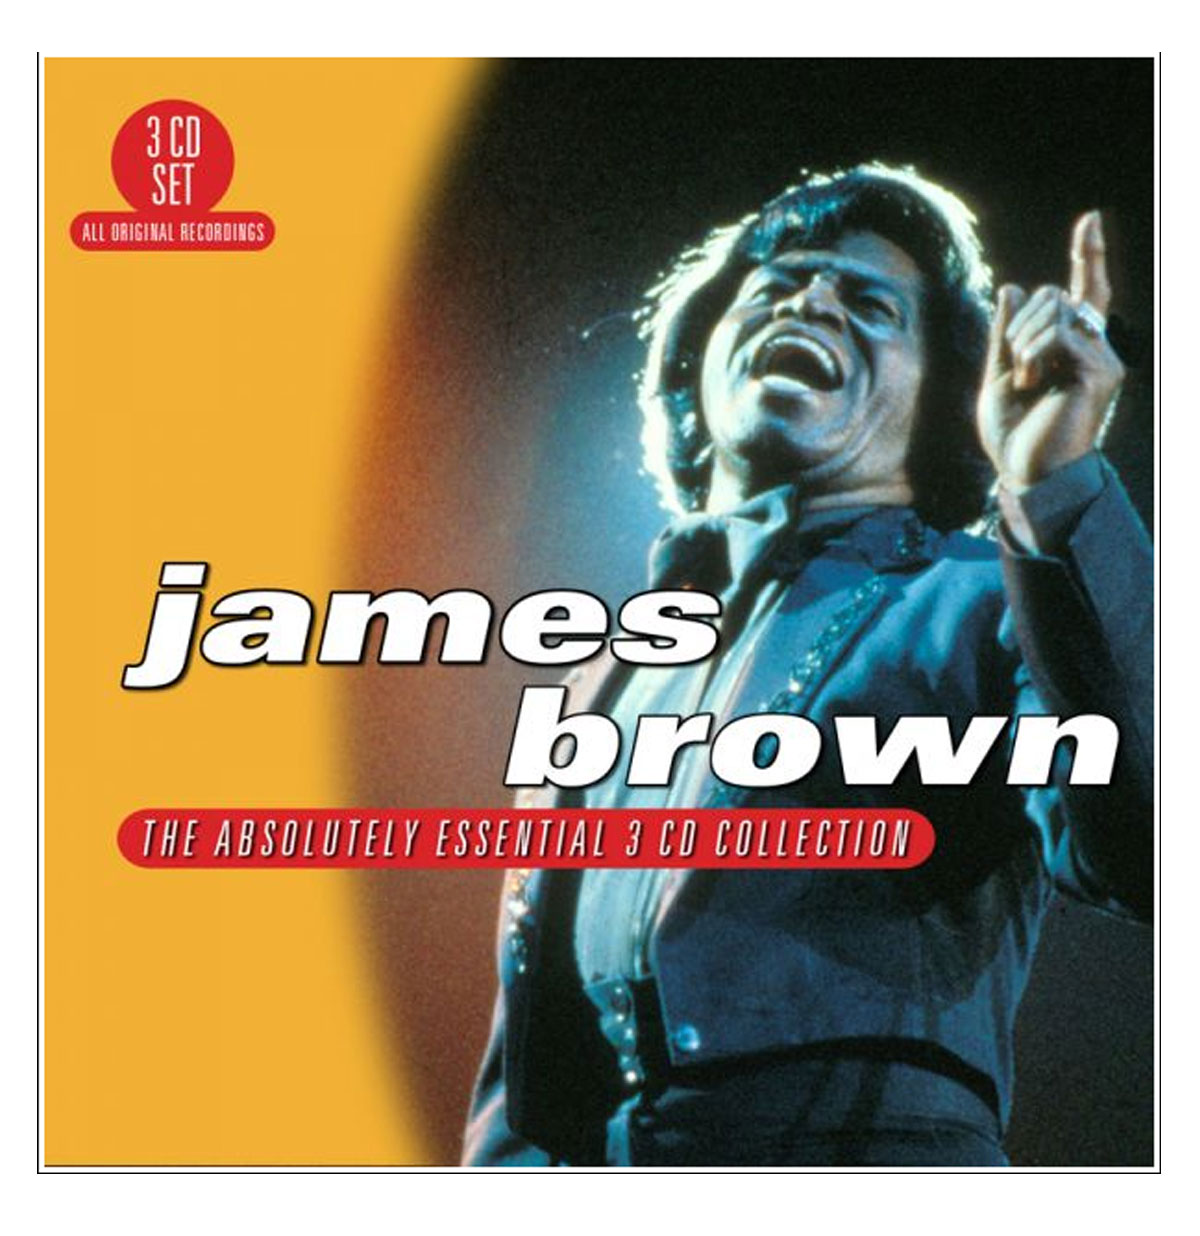 James Brown - Absolutely Essential 3 CD Collection